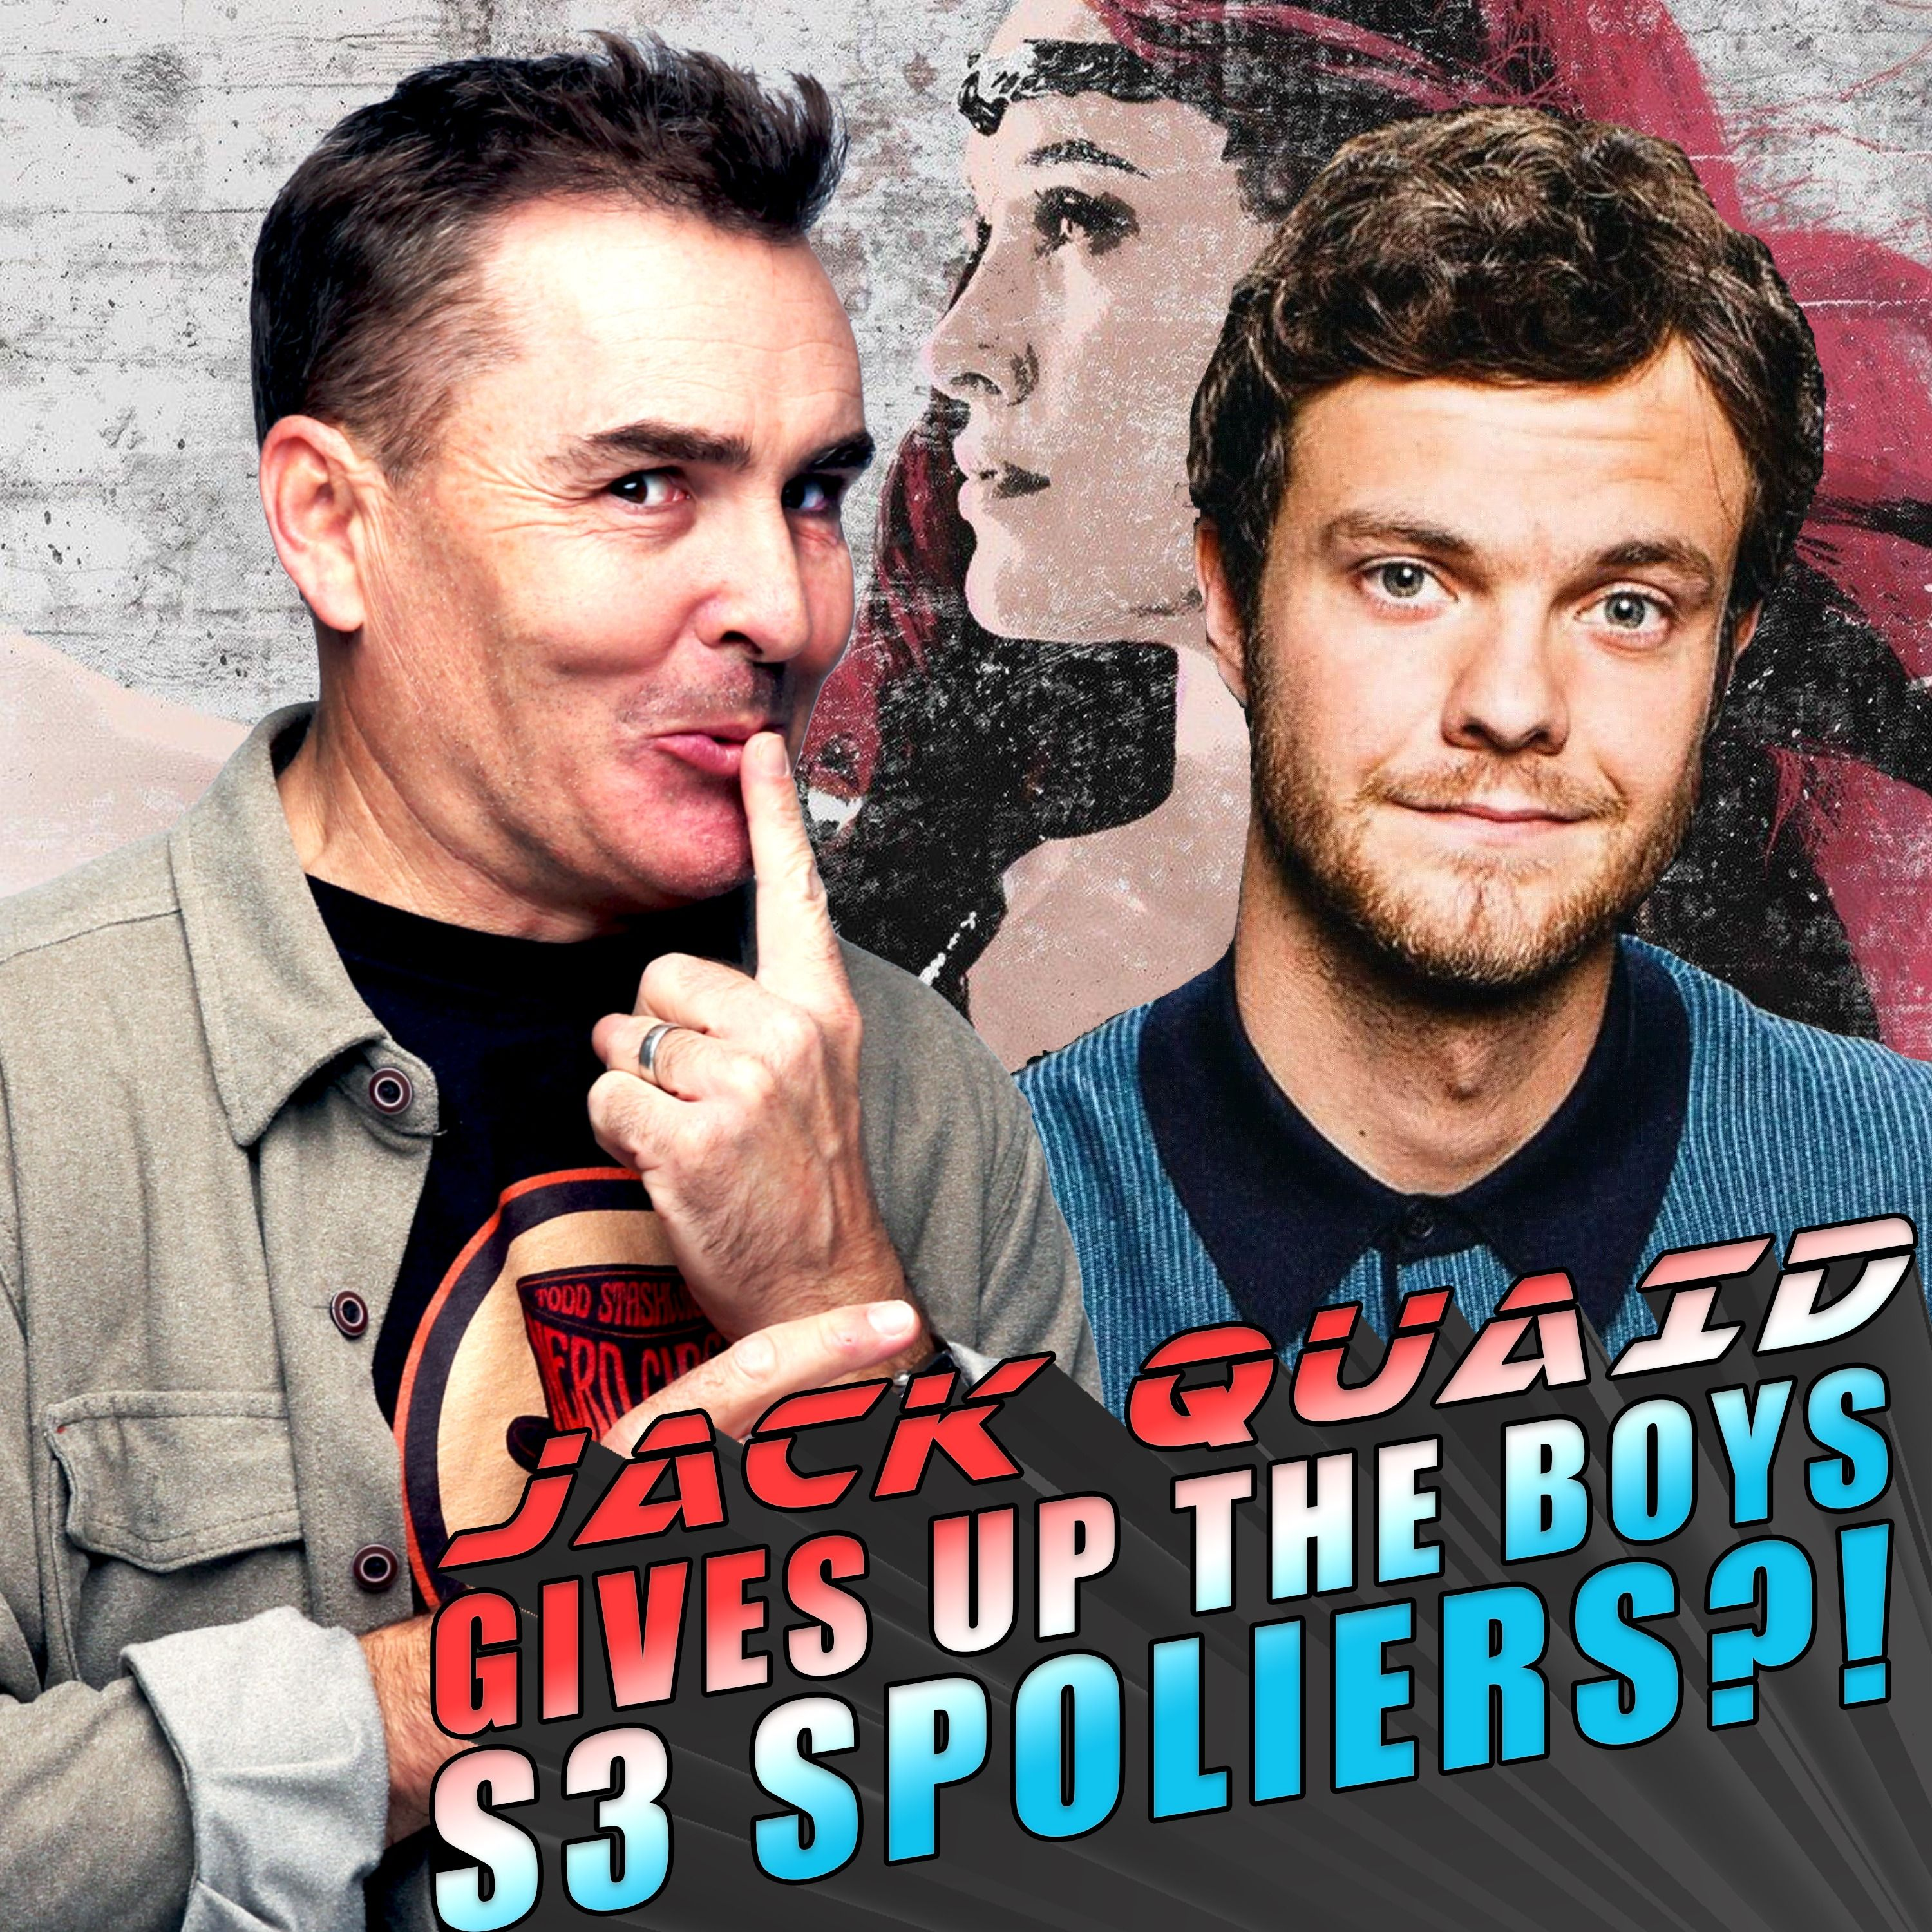 Nolan Gets Jack Quaid To Give Up The Boys Season 3 Spoilers! | RETRO REPLAY